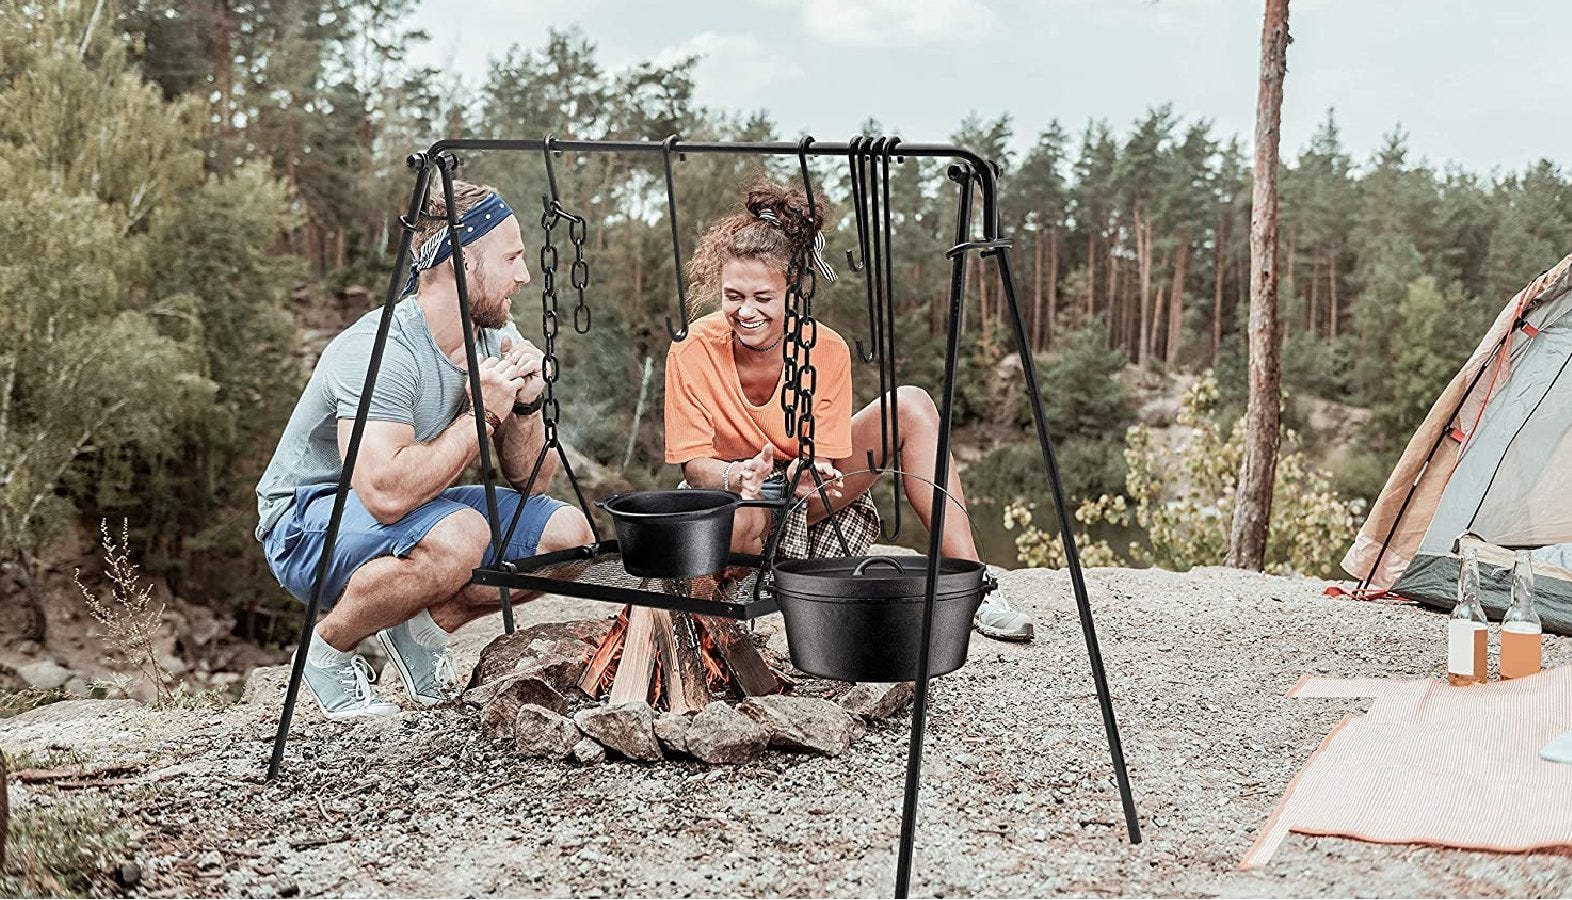 A couple chatting together at camp, while their food simmers away on a Bruntmor campfire grill swing.